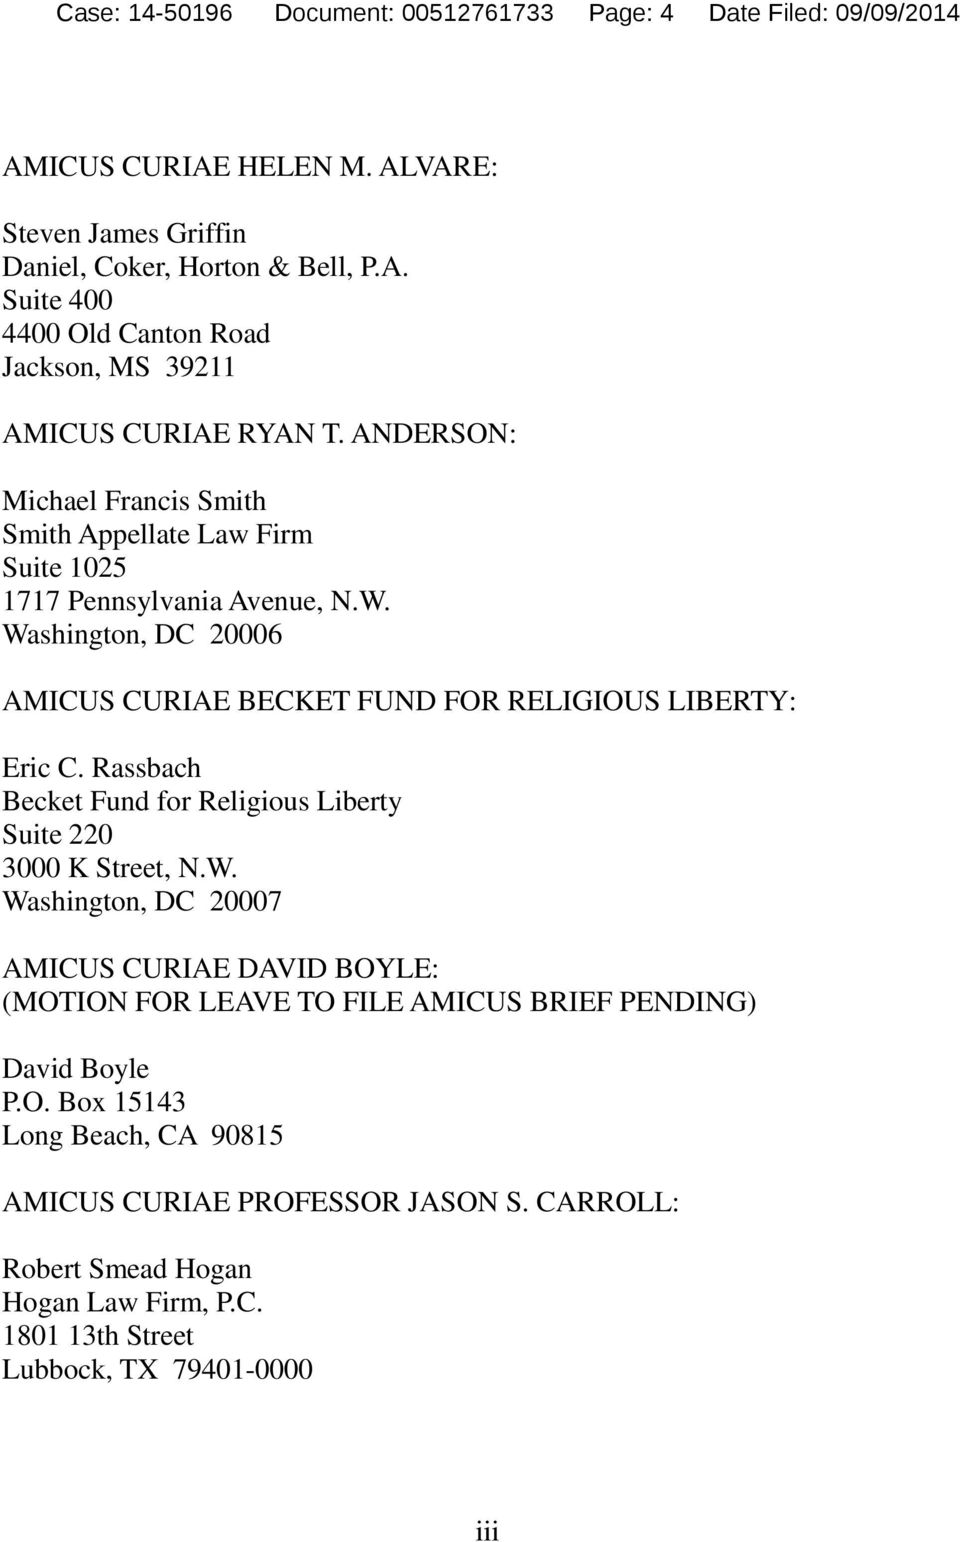 Rassbach Becket Fund for Religious Liberty Suite 220 3000 K Street, N.W. Washington, DC 20007 AMICUS CURIAE DAVID BOYLE: (MOTION FOR LEAVE TO FILE AMICUS BRIEF PENDING) David Boyle P.O. Box 15143 Long Beach, CA 90815 AMICUS CURIAE PROFESSOR JASON S.